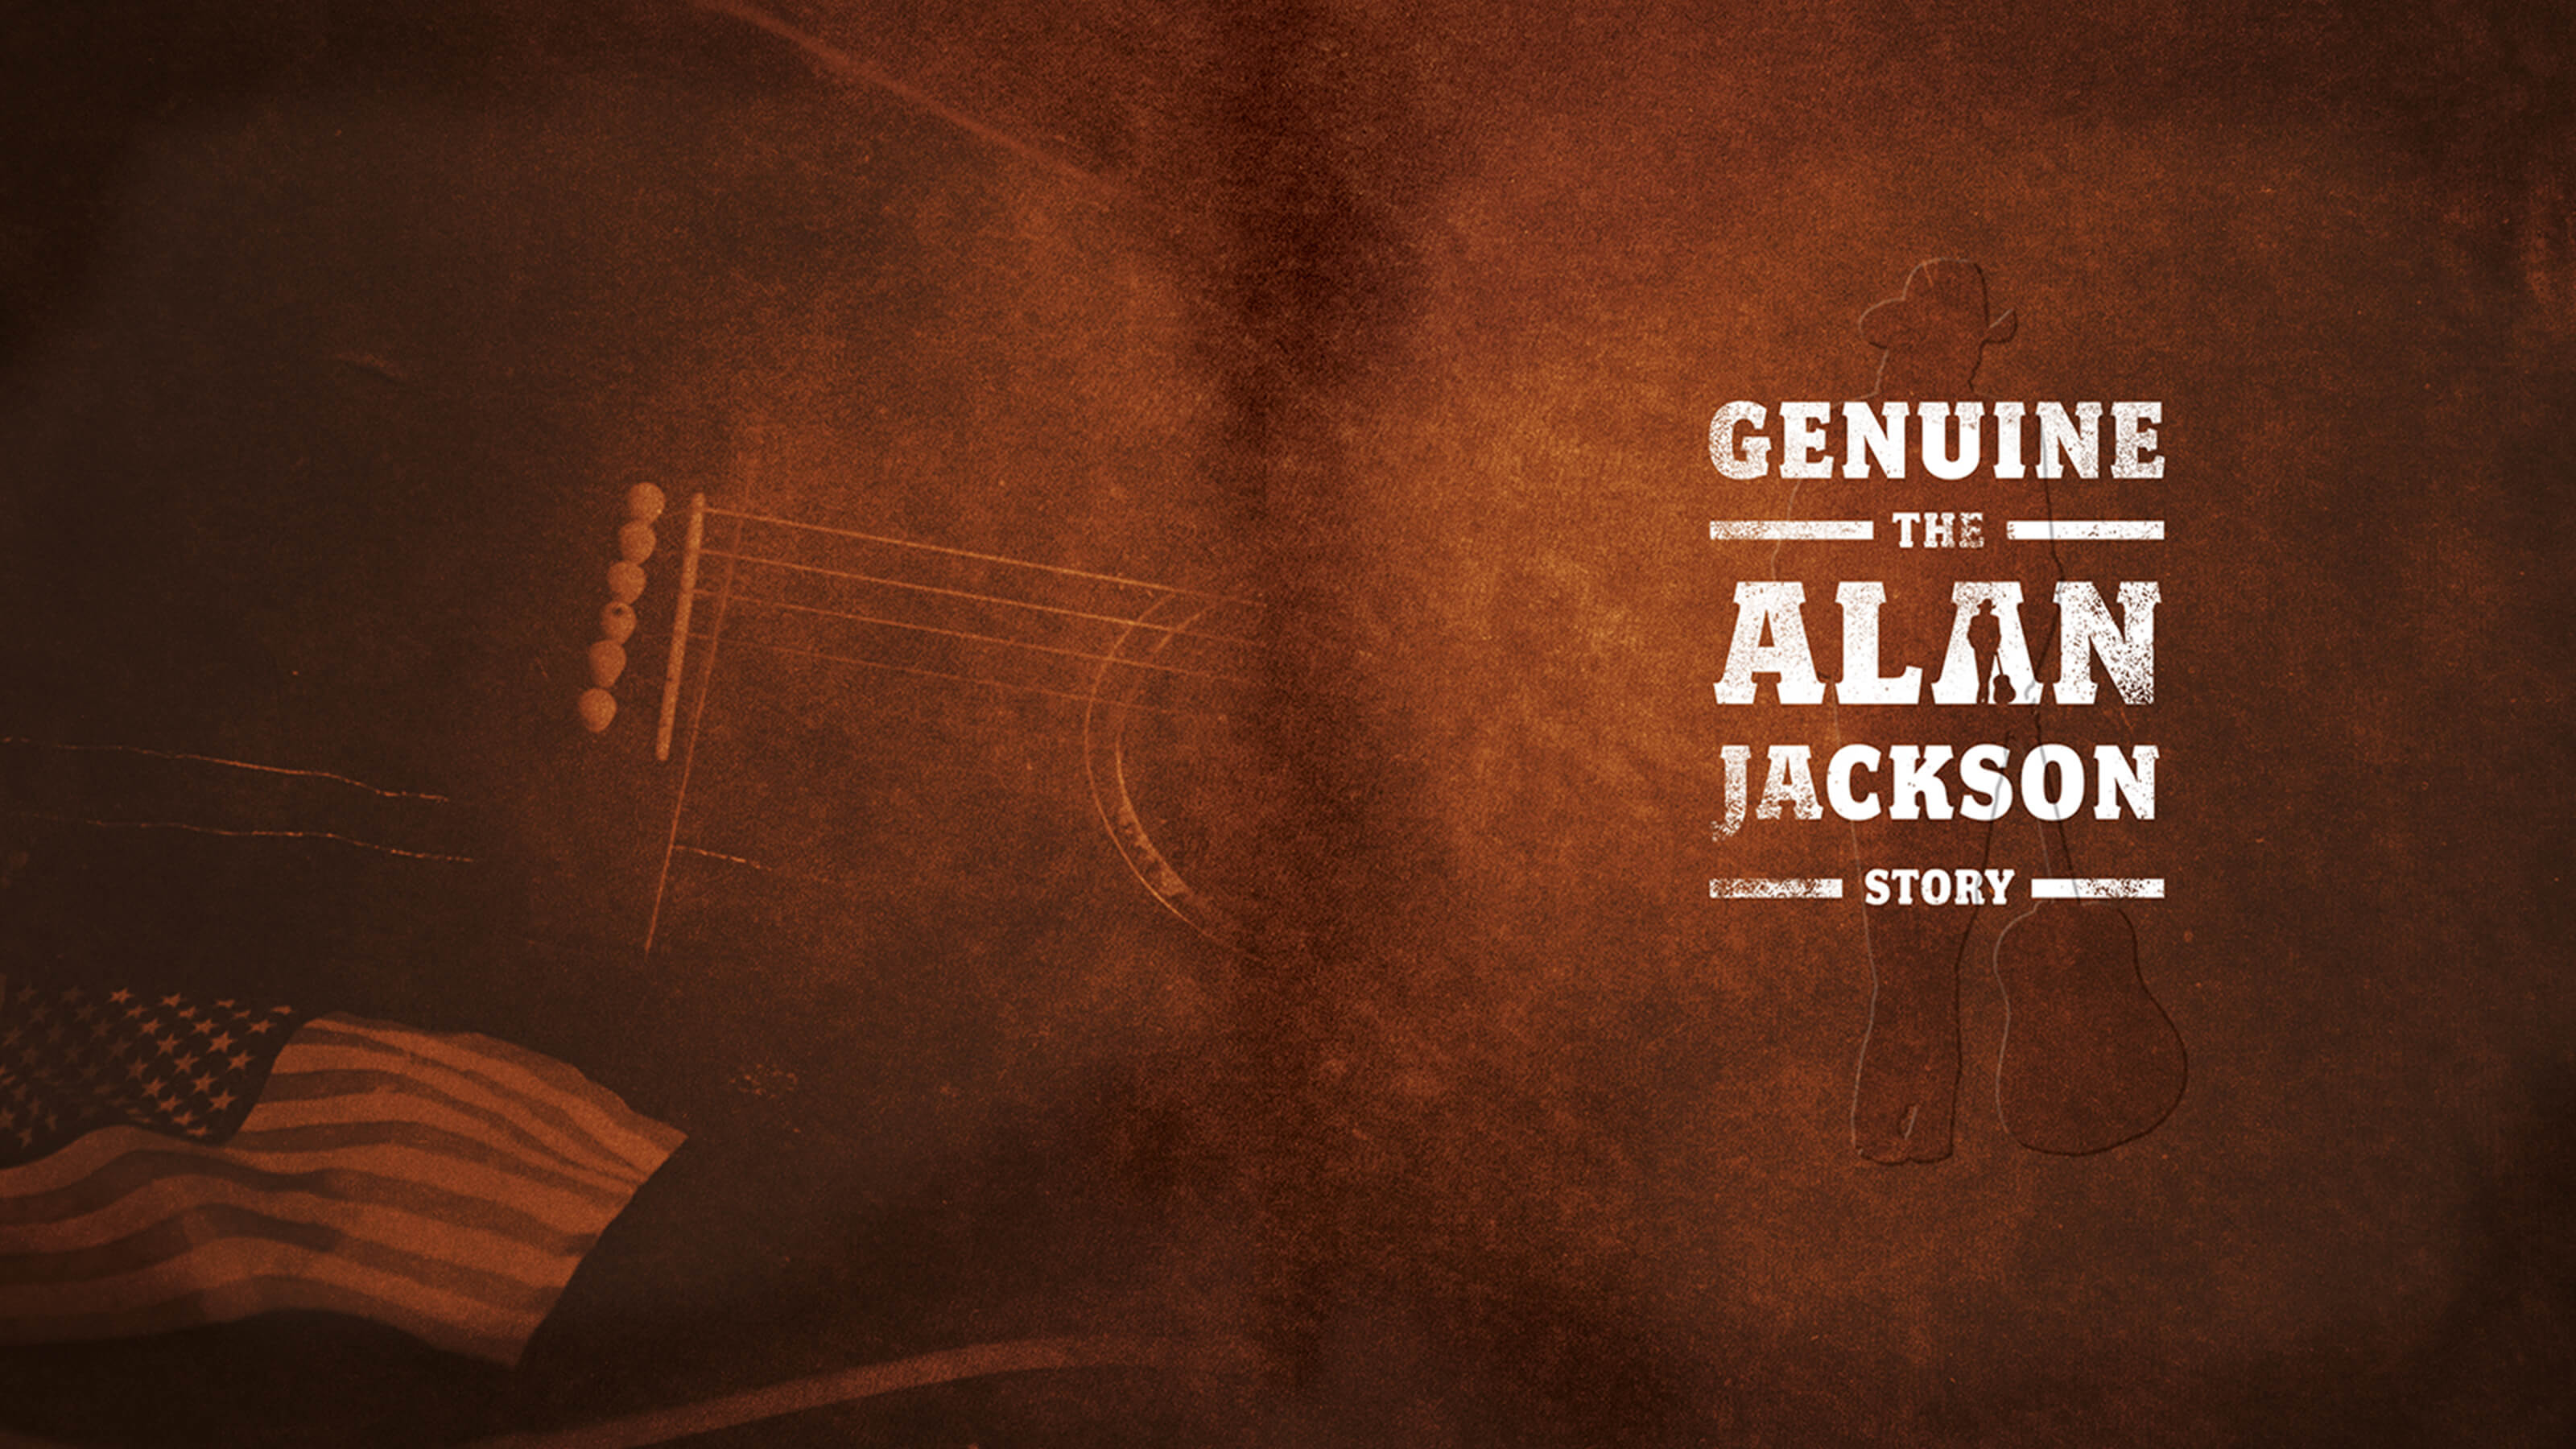 Alan Jackson Genuine the Alan Jackson Story thumbmail for Fieker Brothers Alan Jackson package design